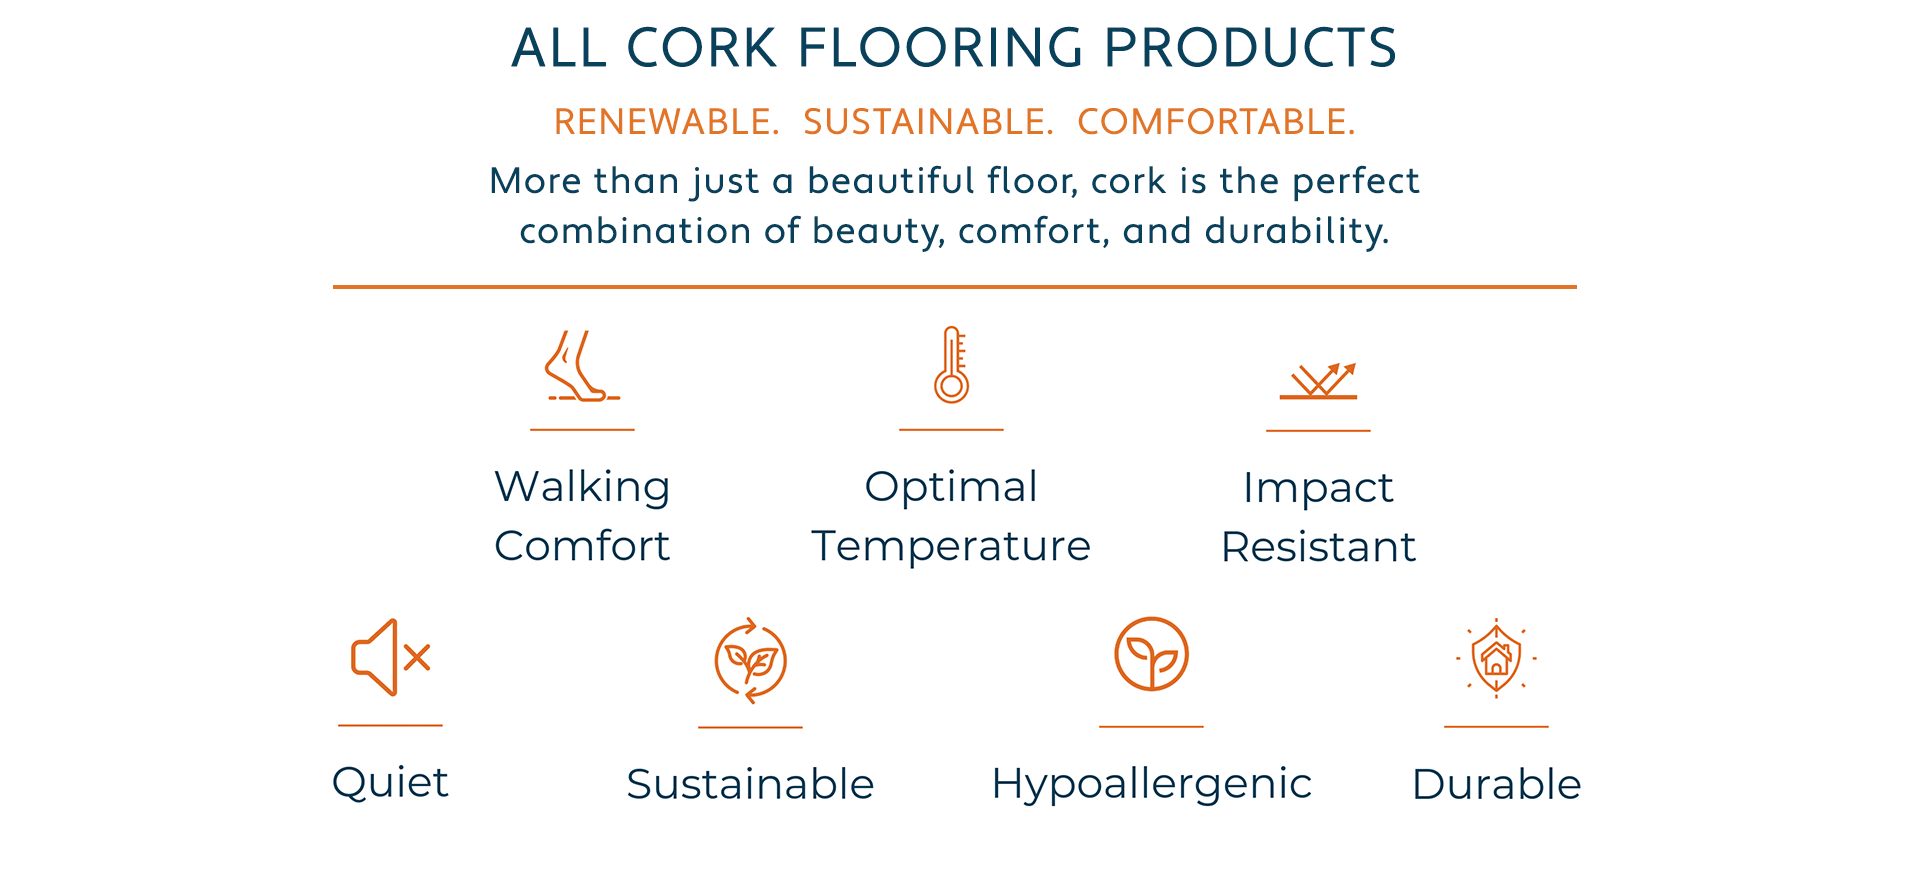 All of our Cork Flooring Products - Cork flooring is Renewable, Sustainable, Comfortable. More than just a beautiful floor, cork is the perfect combination of beauty, comfort and durability.  Benefits of cork flooring include: Walking Comfort, Optimal Temperature, Impact Resistance, Silence, Sustainability, Hypoallergenic, and Durability